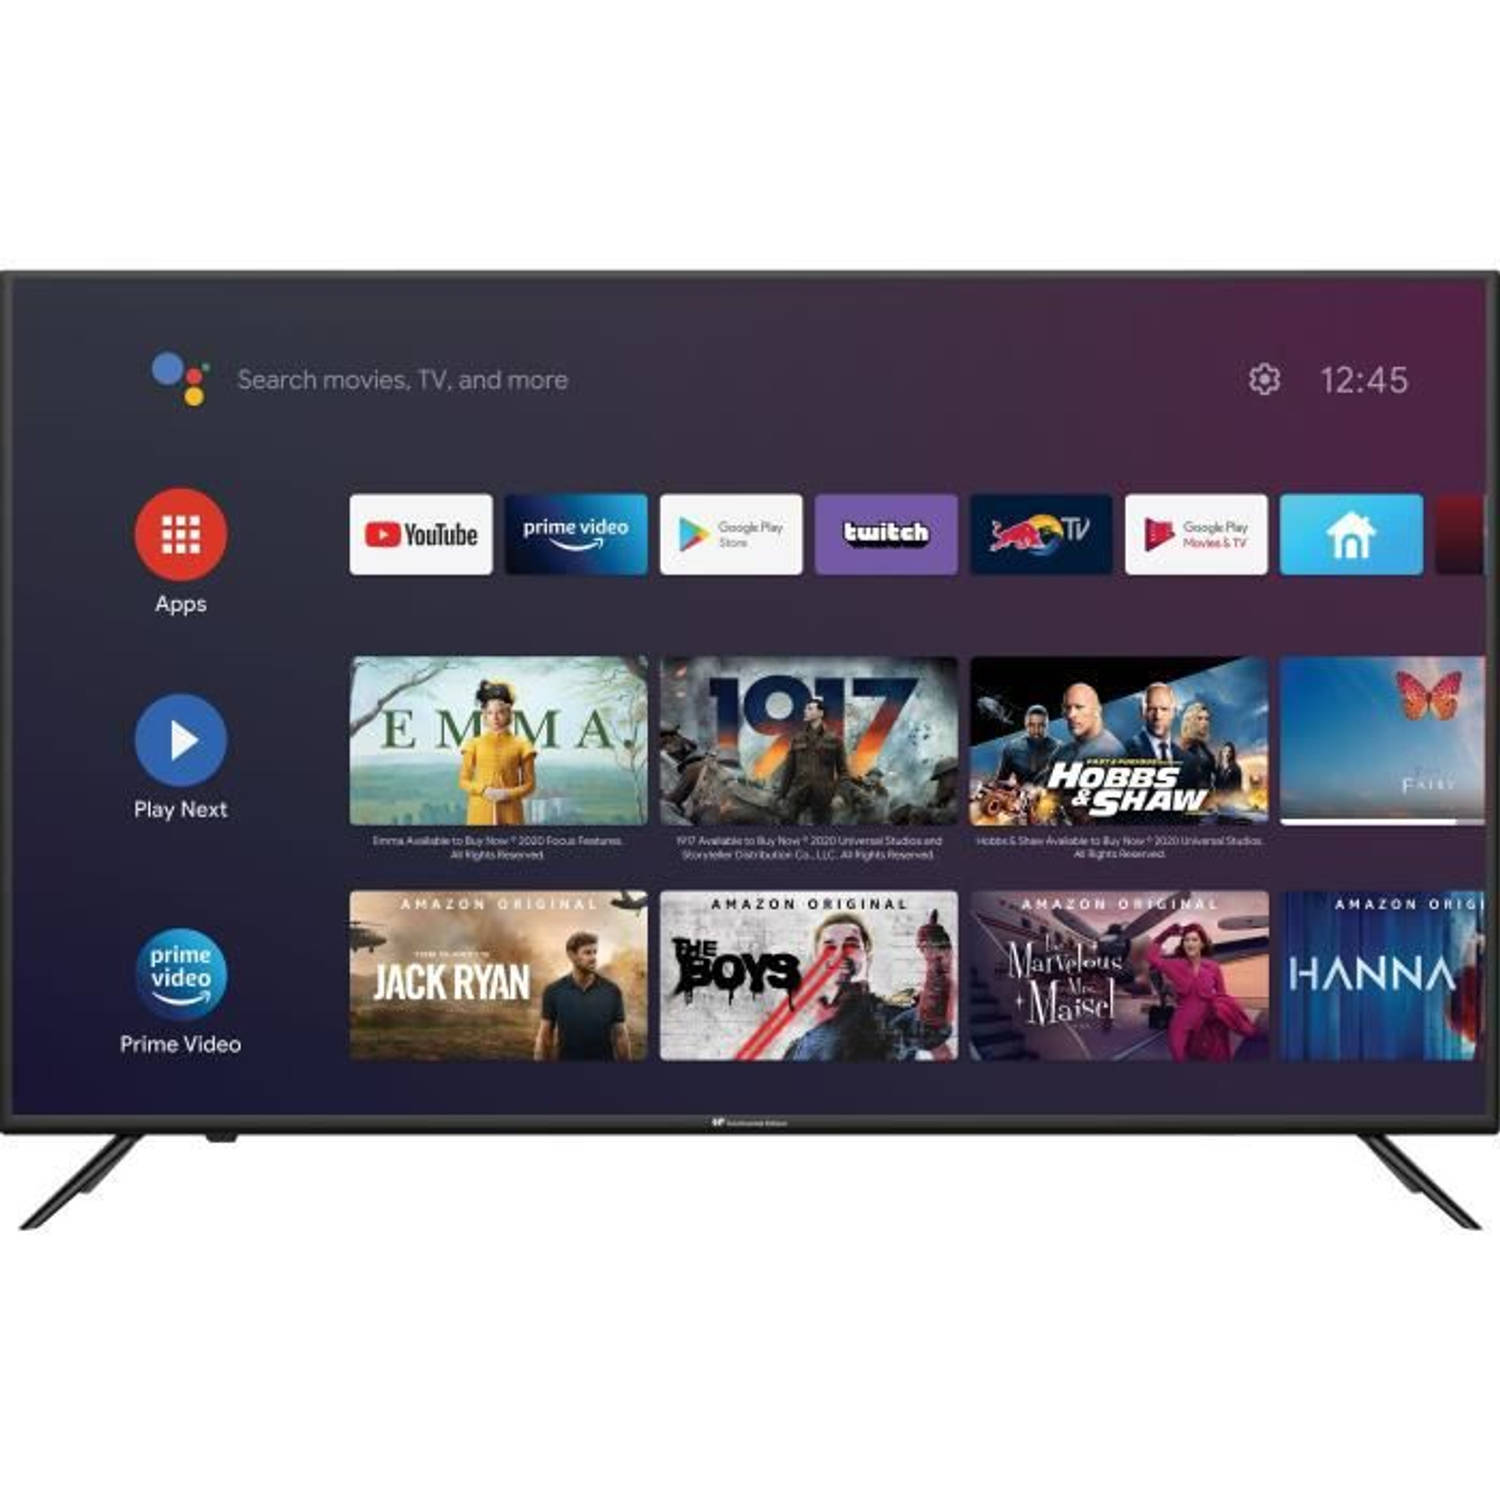 Korting Continental Edison Android Tv Qled 43 '' (109 Cm) 4k Ultra Hd Android Wi Fi Bluetooth Netflix Hdr Chromecast